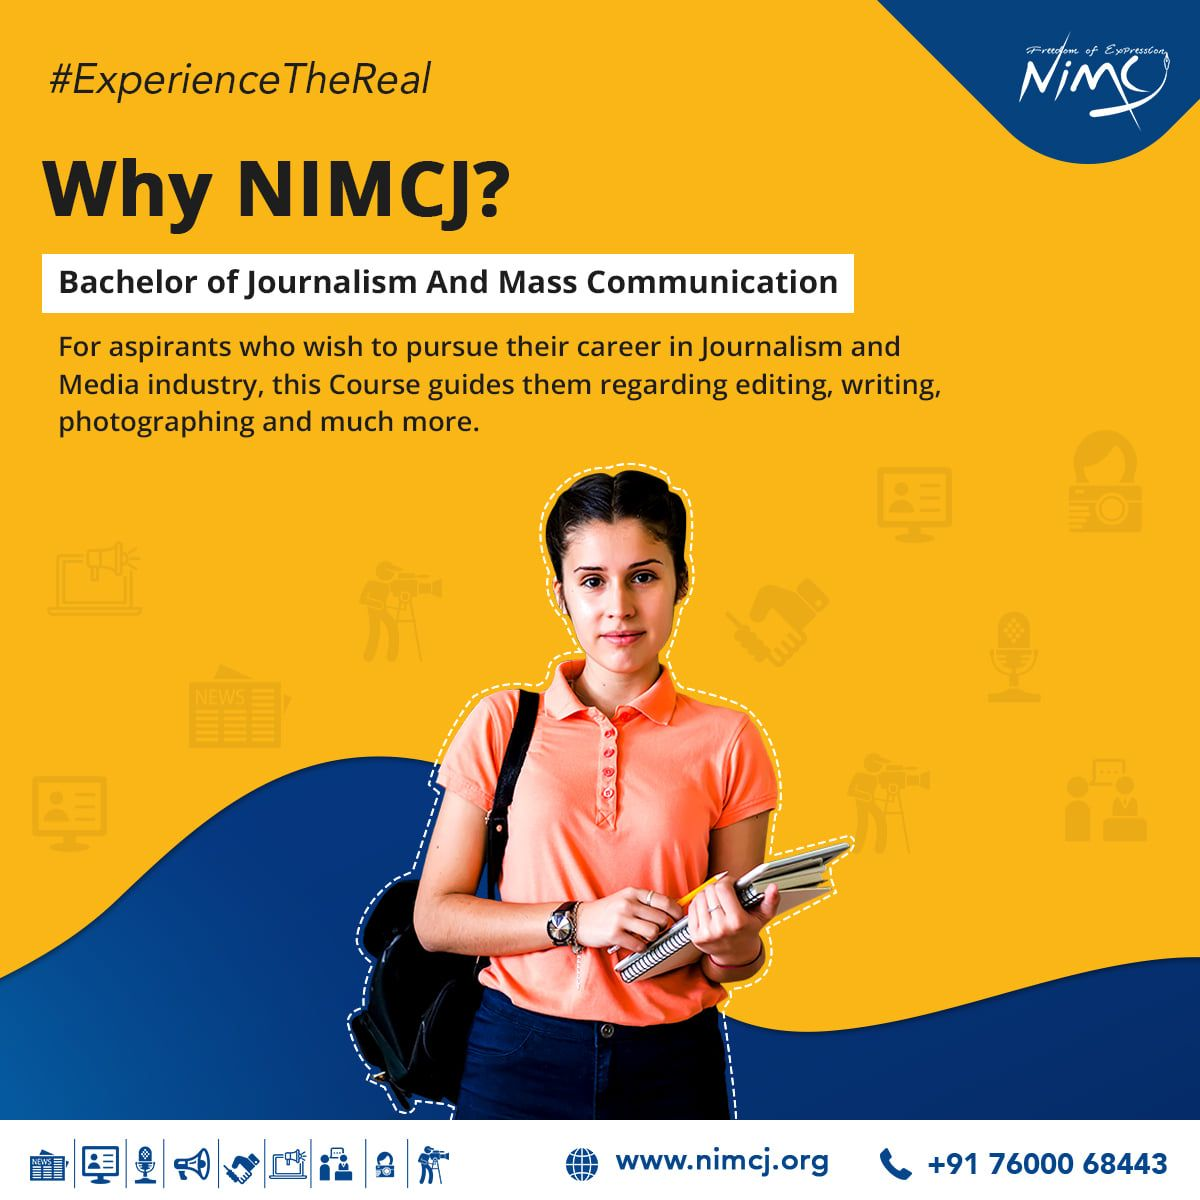 Bachelor of Journalism And Mass Communication(BJMC) is the